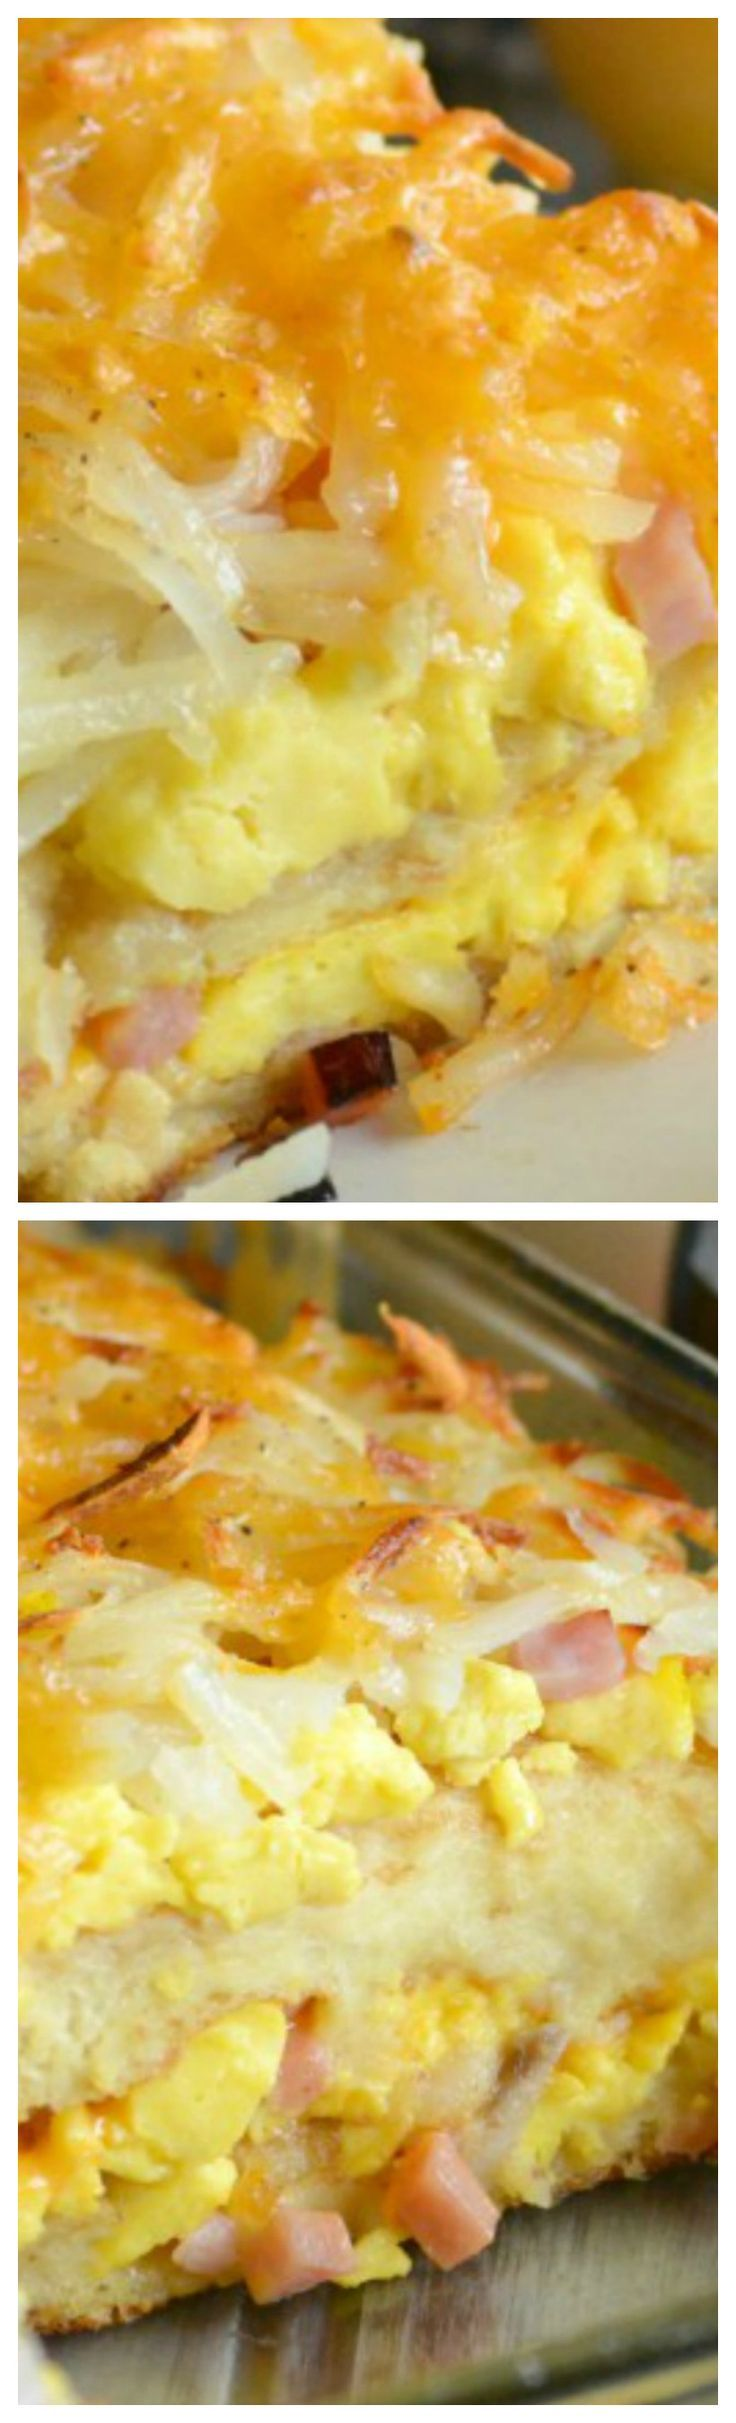 Breakfast Lasagna ~ Fluffy scrambled eggs and diced ham are sandwiched between layers of French toast with a syrup drizzle and a crispy hash brown crust... Day or night– it's a hearty meal that's sure to please any crowd.